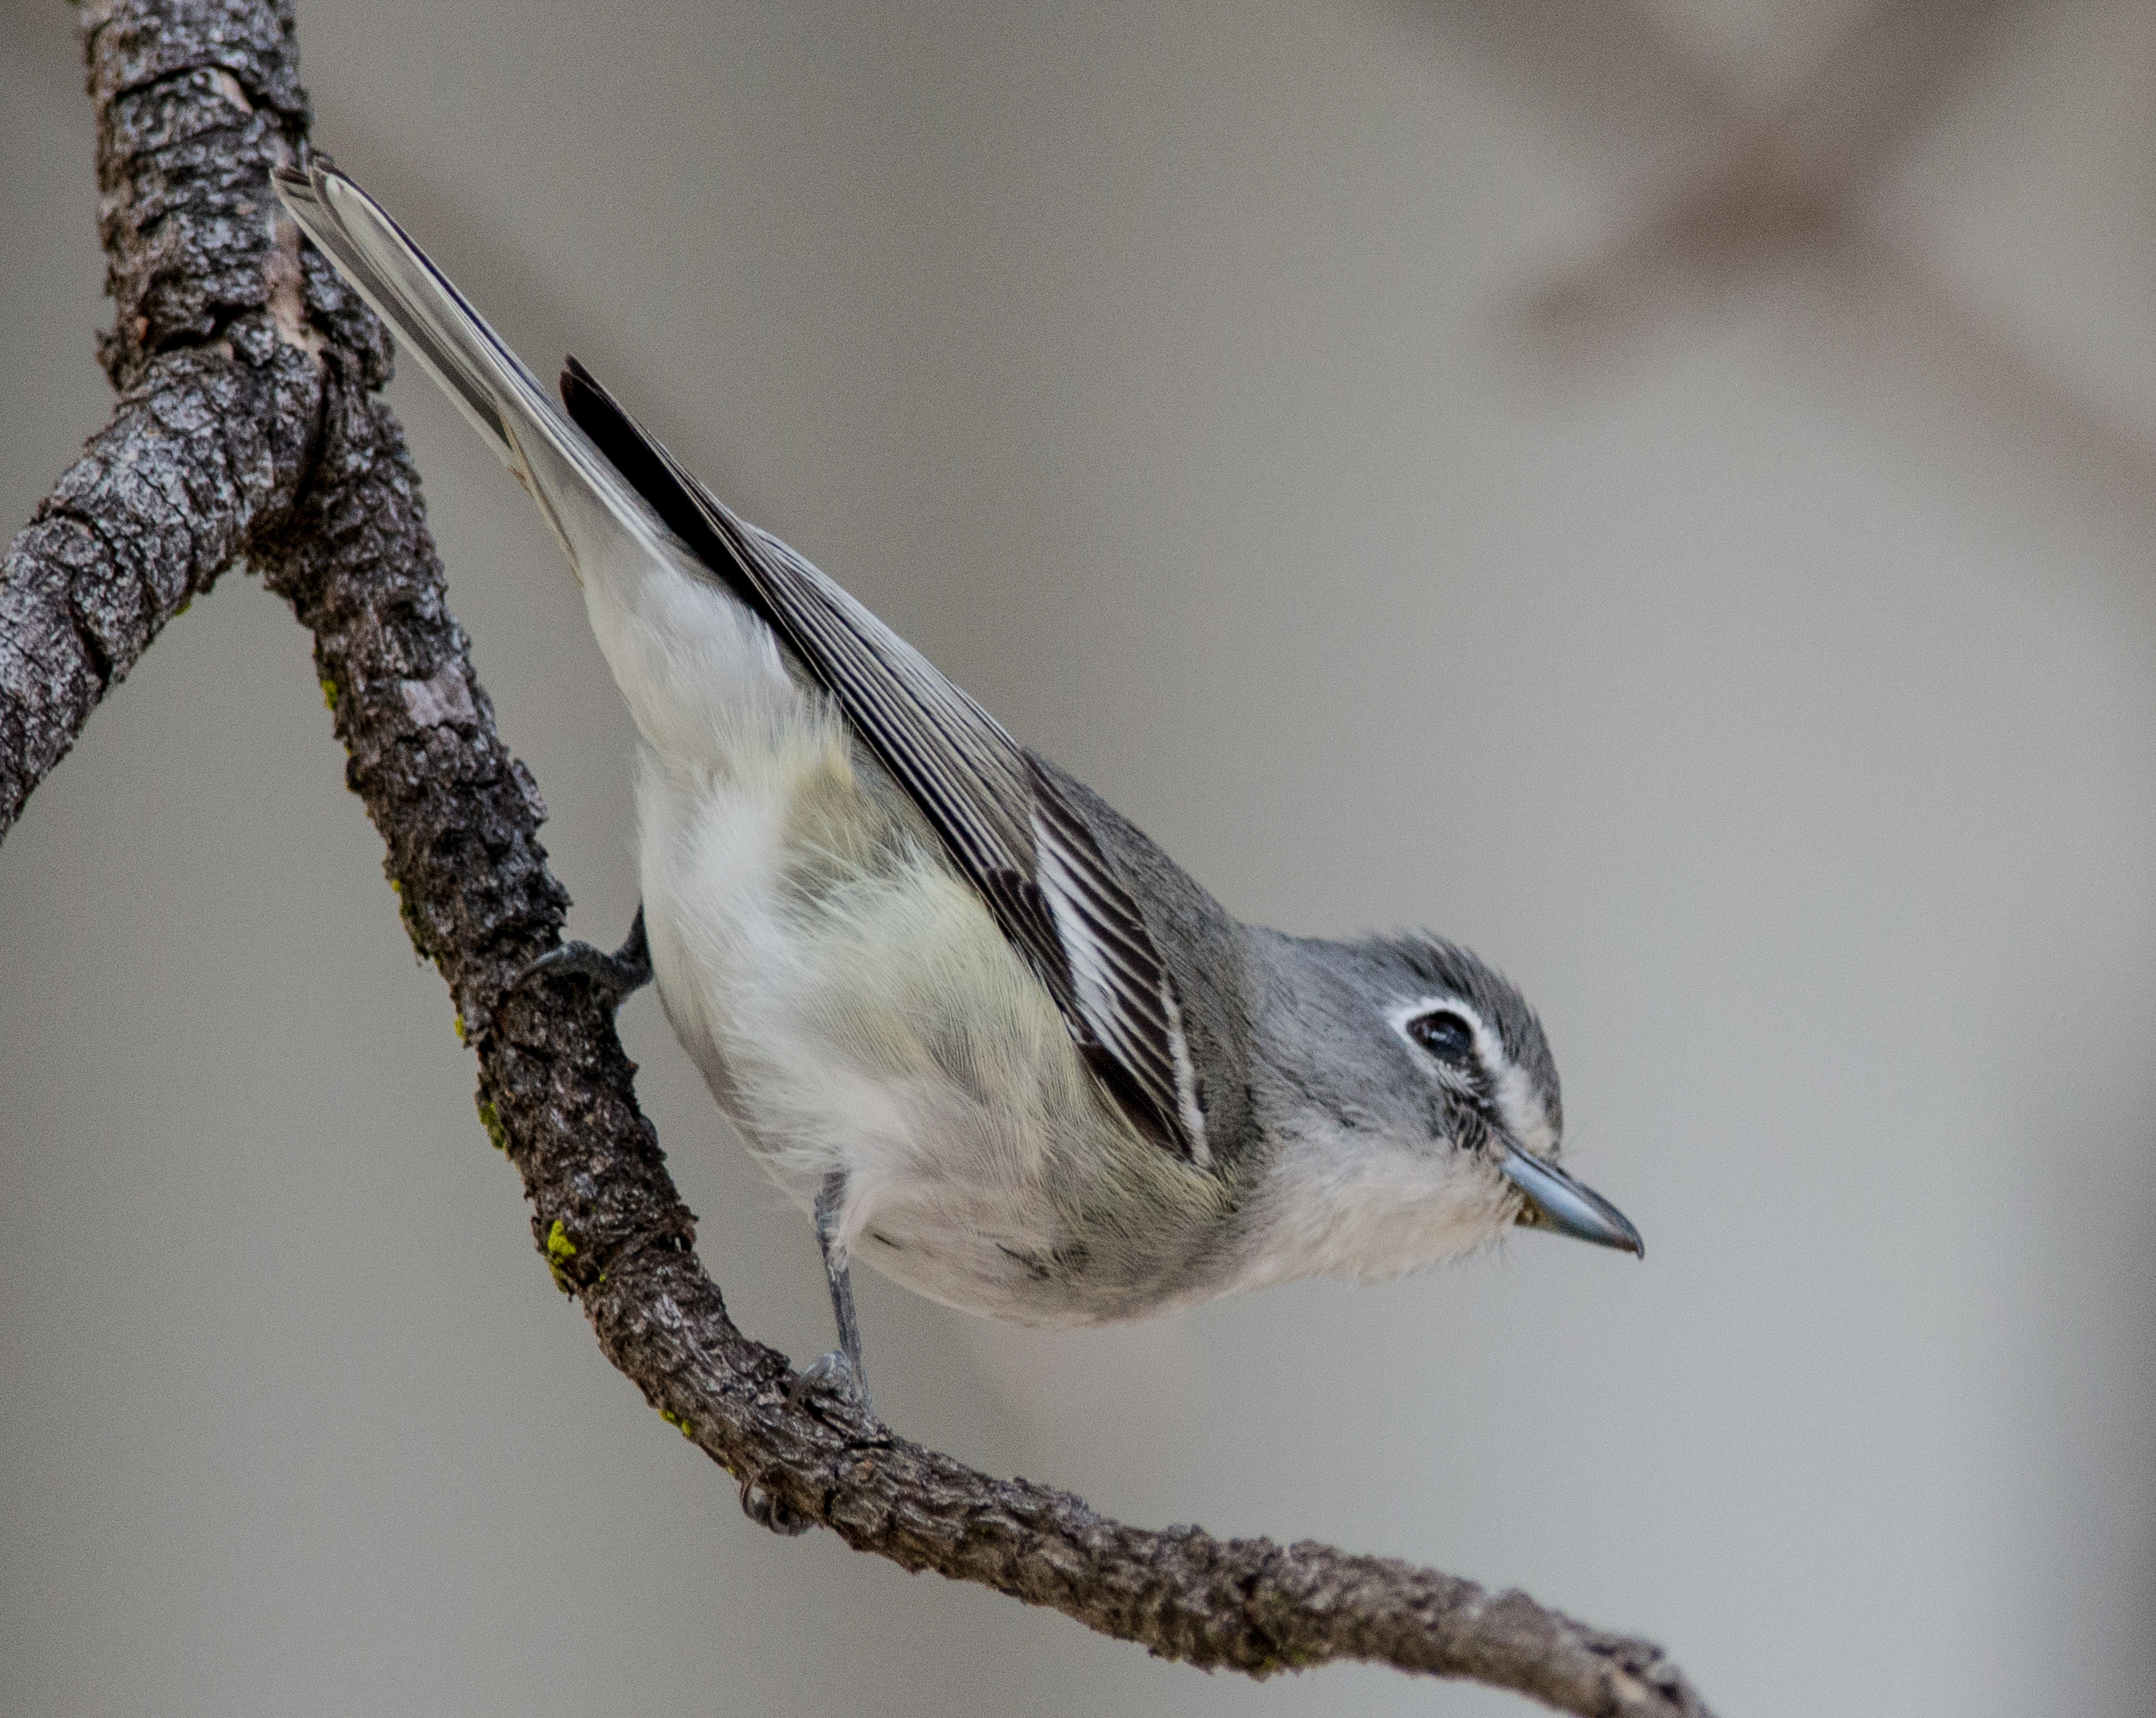 Featured Photo 19: Plumbeous Vireo (Vireo plumbeus)  EQ: D800 300mm f/2.8 with 1.7x TC  Taken: 12-27-13 13:22  Setting: 500mm, 1/640s, f/4.8, ISO1400  Condition: Shady tree grove